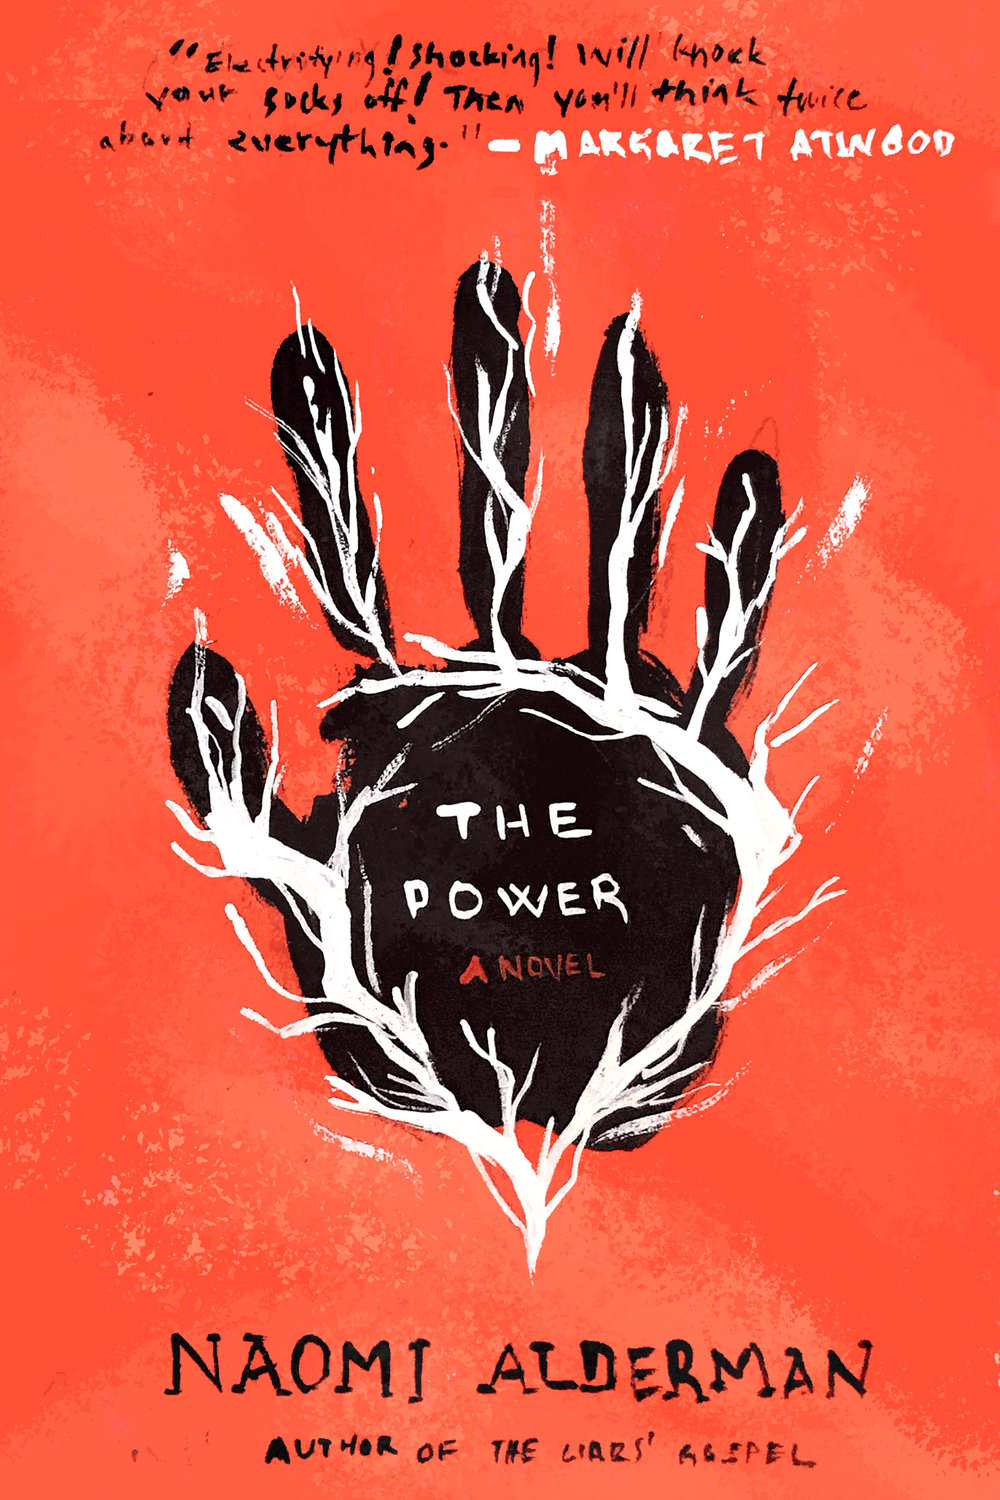 The Powerby Naomi Alderman - (Audible | Amazon)In The Power the world is a recognisable place: there's a rich Nigerian kid who lounges around the family pool; a foster girl whose religious parents hide their true nature; a local American politician; a tough London girl from a tricky family. But something vital has changed, causing their lives to converge with devastating effect. Teenage girls now have immense physical power - they can cause agonising pain and even death. And, with this small twist of nature, the world changes utterly. (Goodreads summary)I tell everyone about this novel because it blew my goddamn mind.I do not want to give anything away (outside of the description above), but The Power forces you to consider our current social climate, politics,